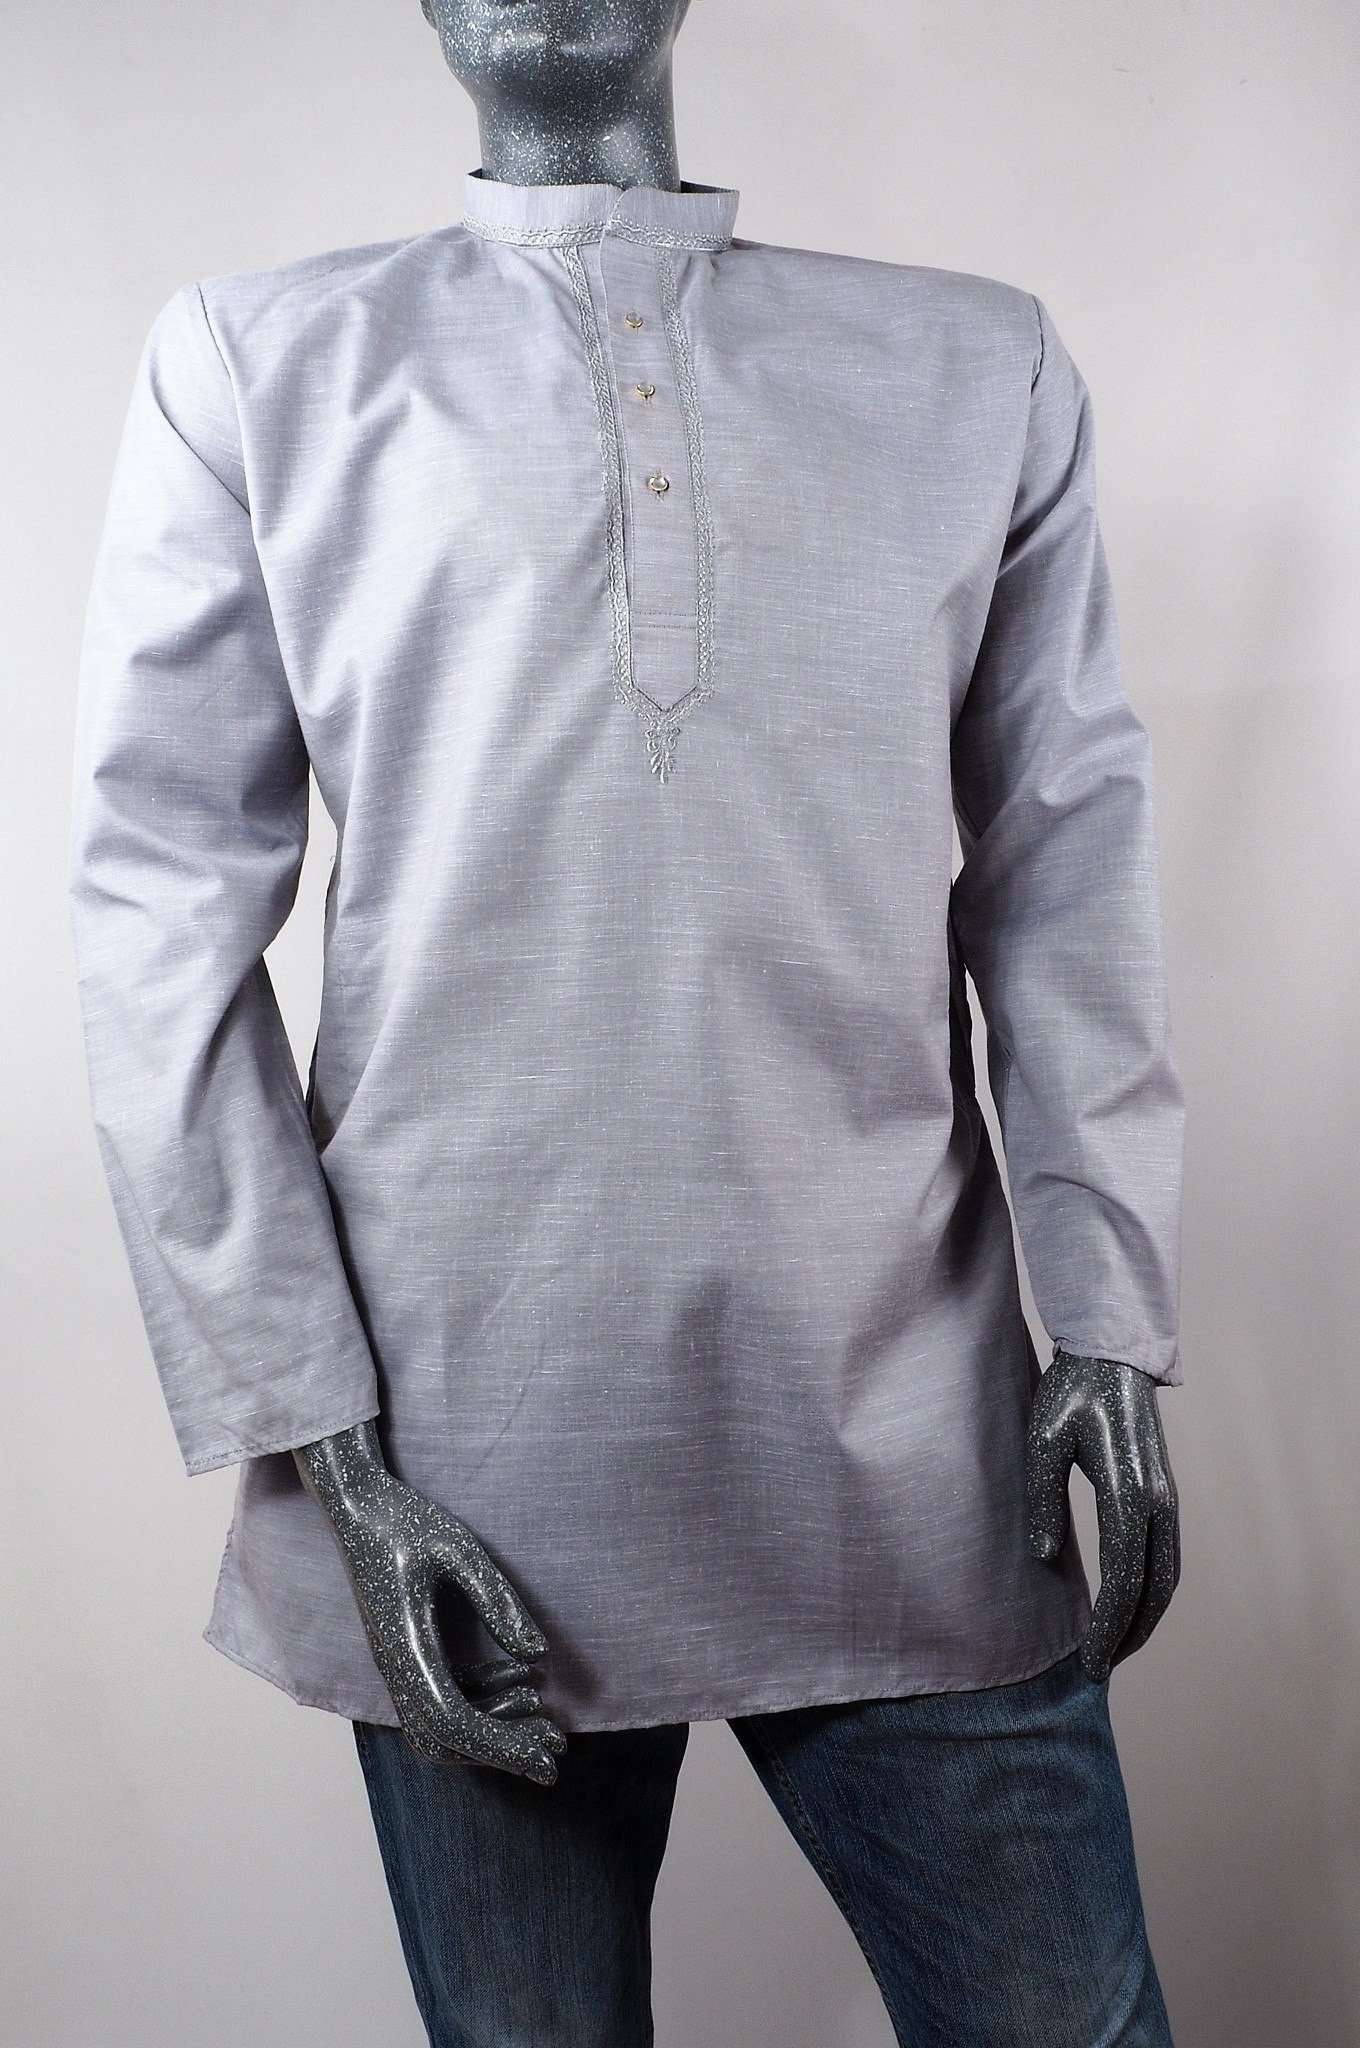 Accord - Mens Grey Indian shirt - Kurta top - Ideal on a pair of jeans 0417 - Prachy Creations